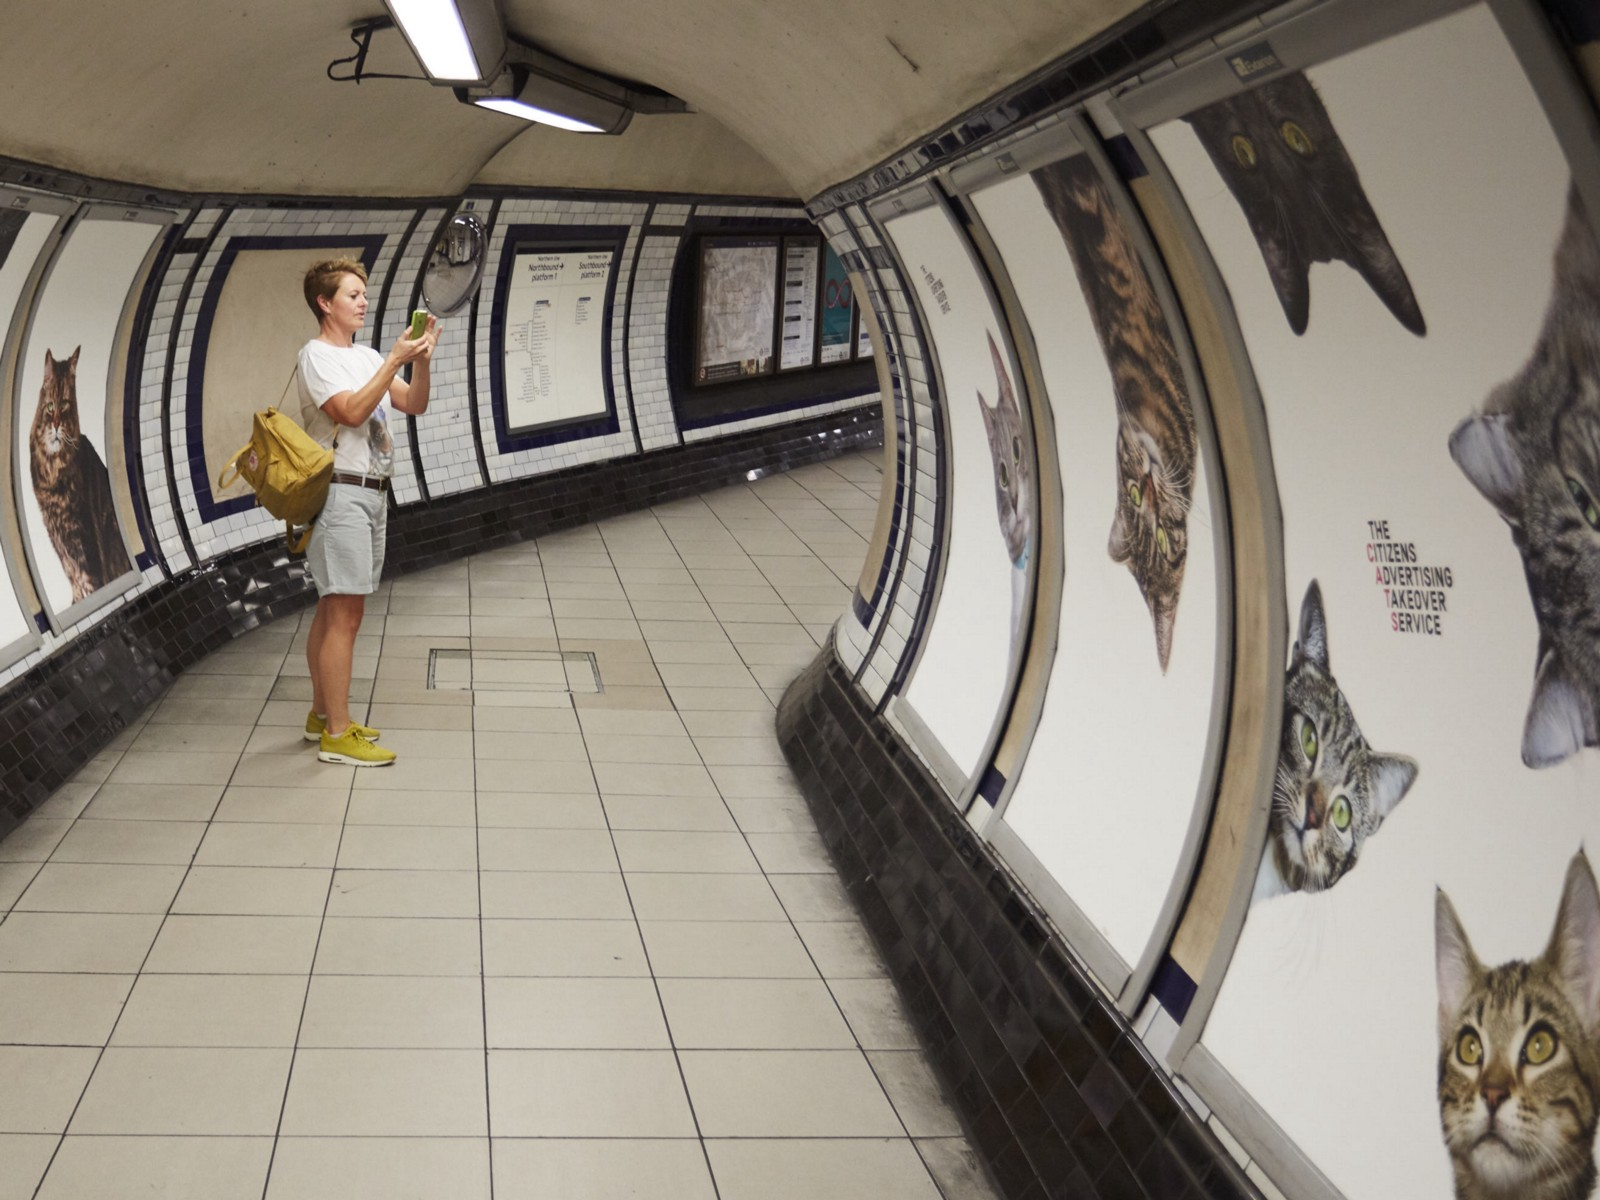 Pictures of cats replace adverts on underground station